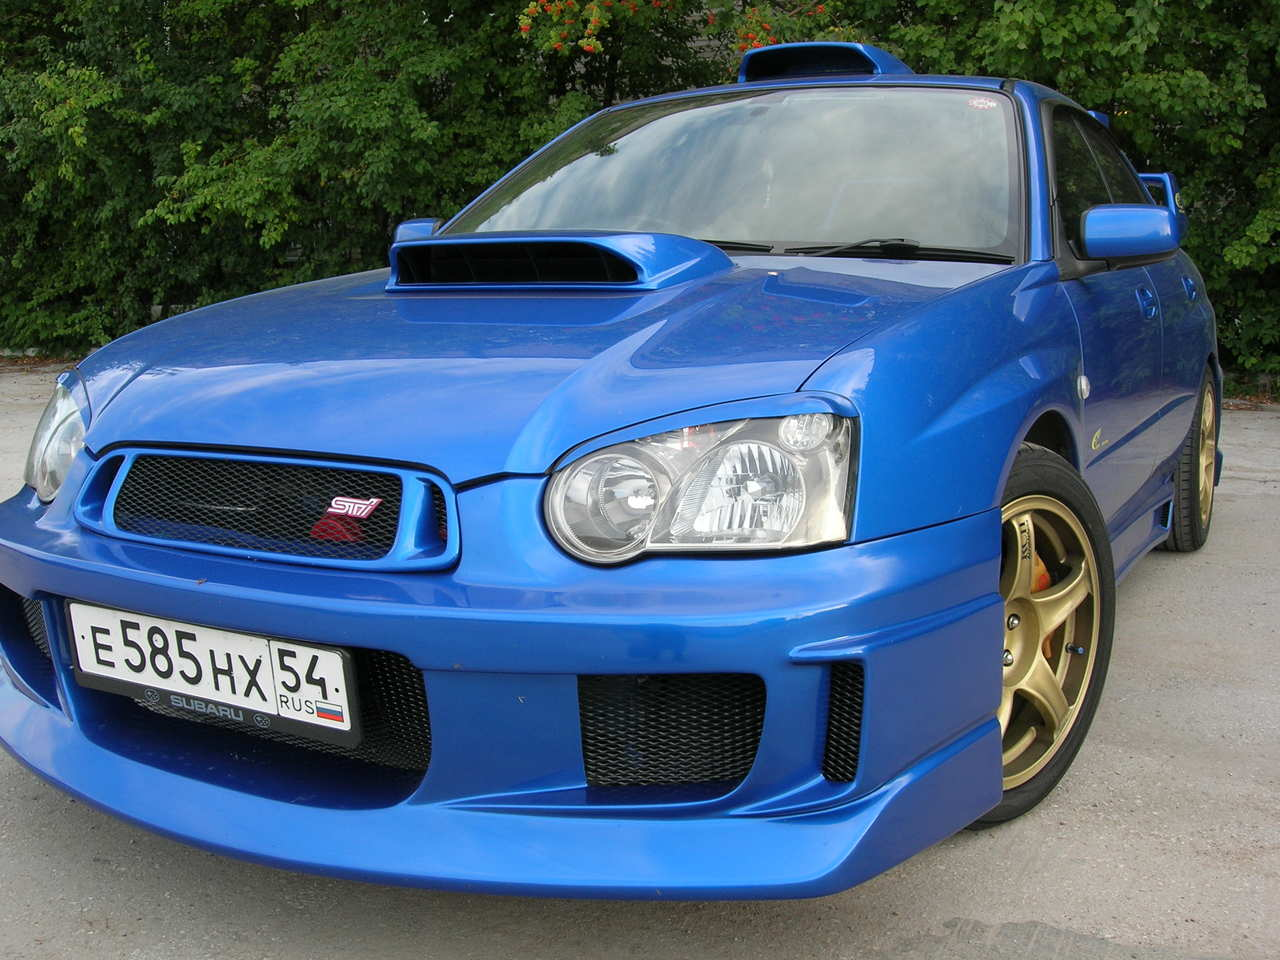 used 2004 subaru impreza wrx sti photos 2000cc gasoline. Black Bedroom Furniture Sets. Home Design Ideas